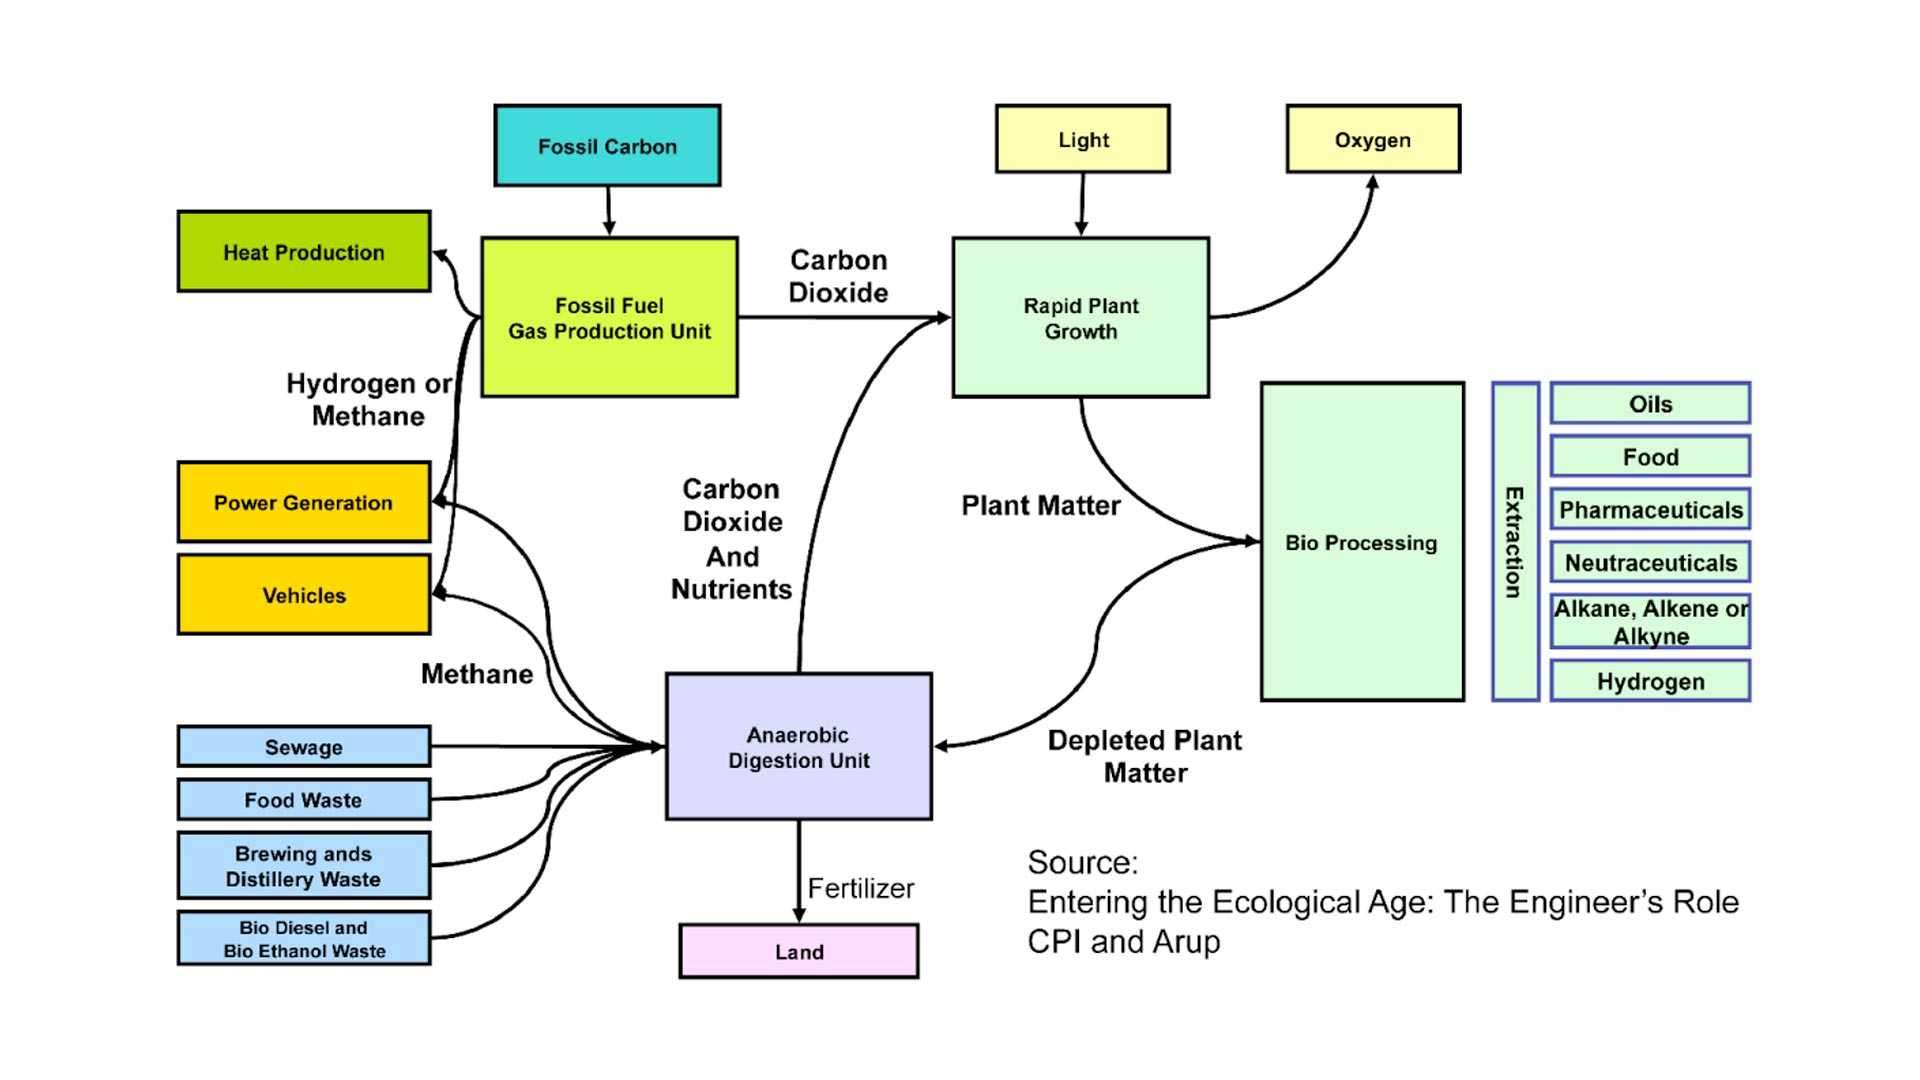 entering the ecological age - the engineer's role